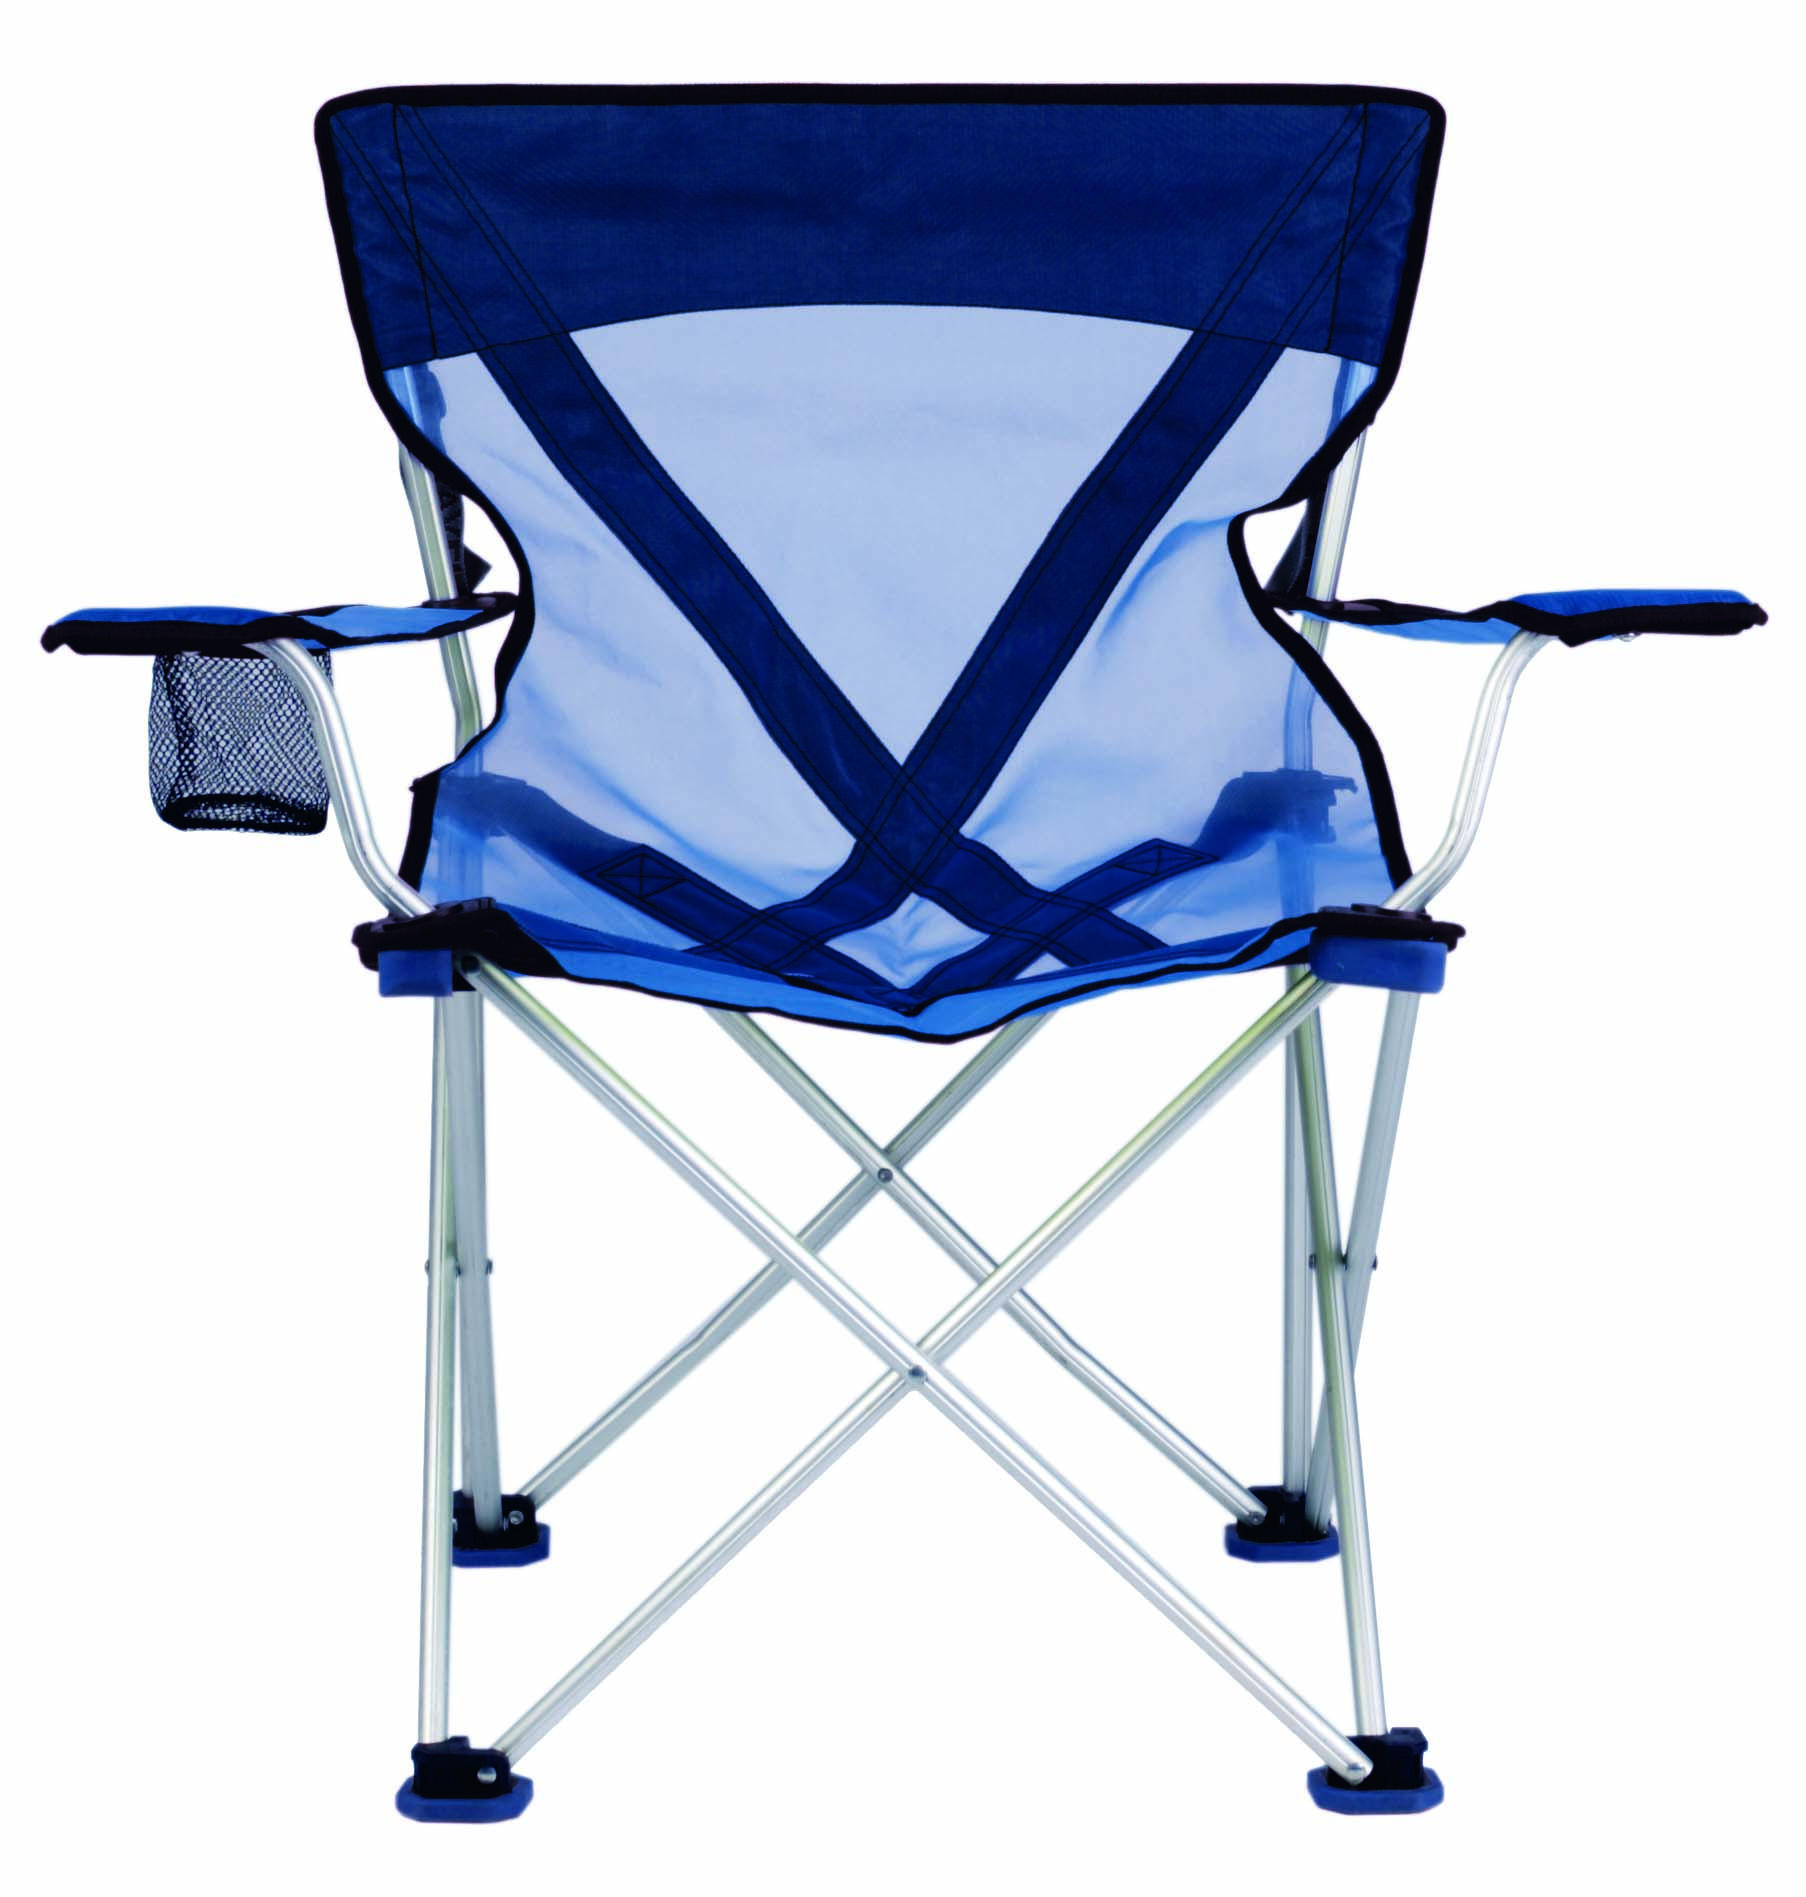 Chair Teddy Aluminum Camping Chair 300 Pound Capacity Blue